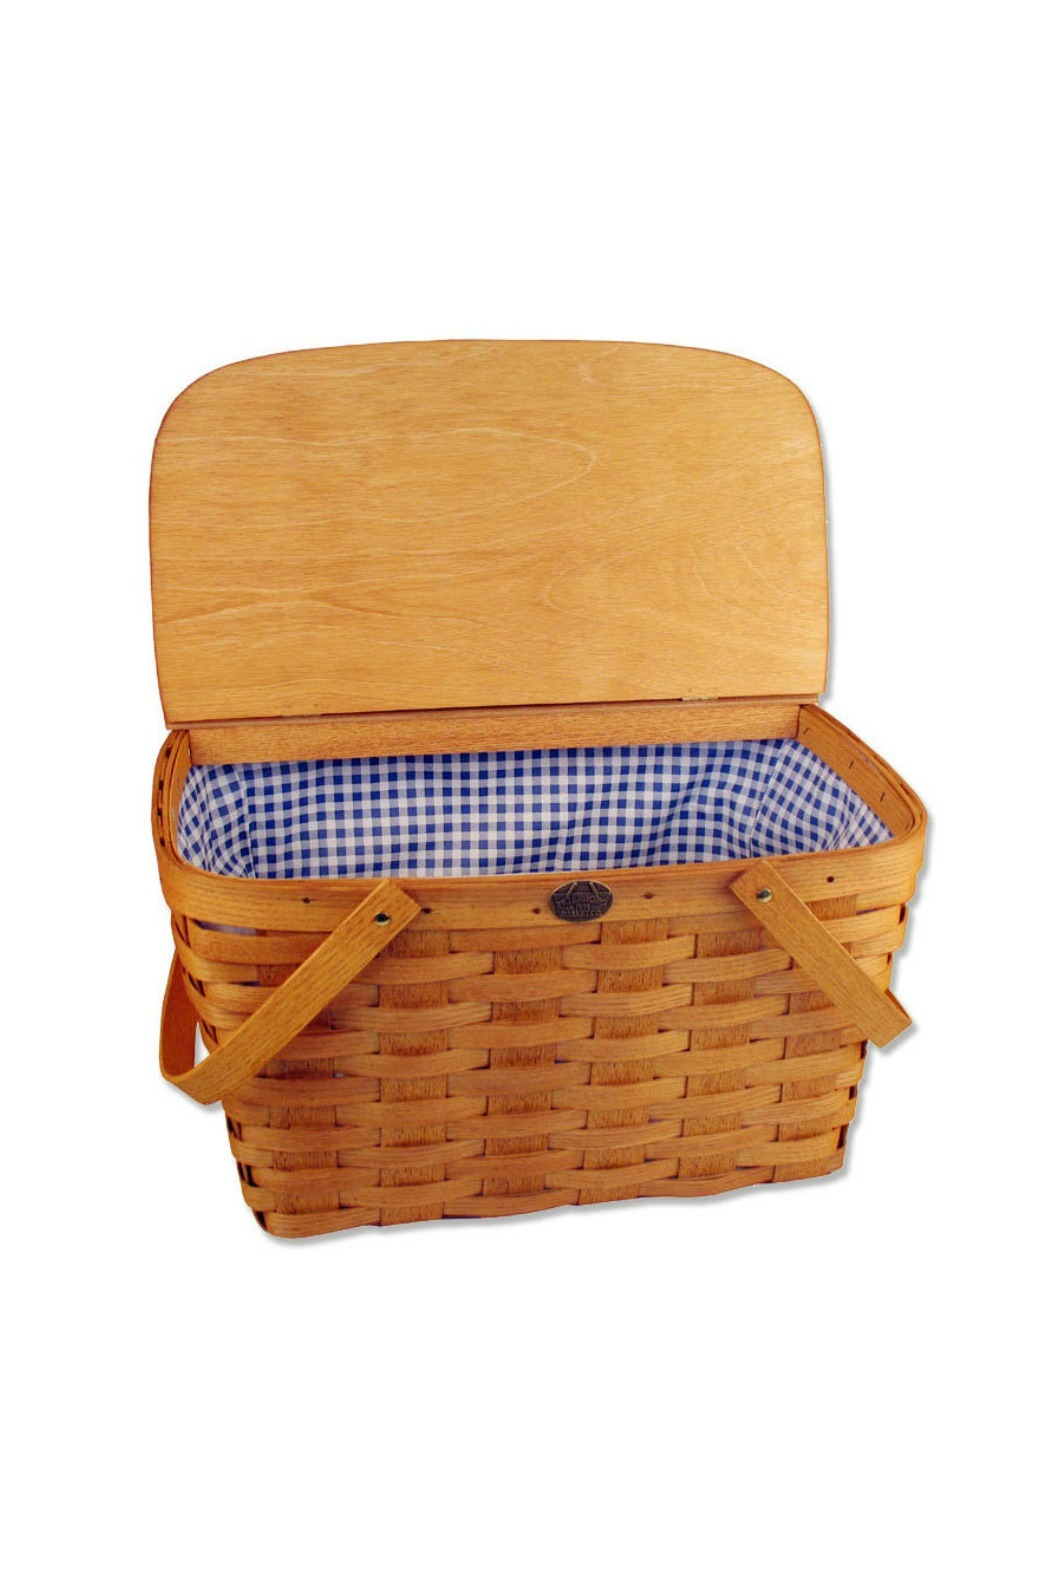 Picnic Basket Business : Peterboro basket company classic picnic from palm